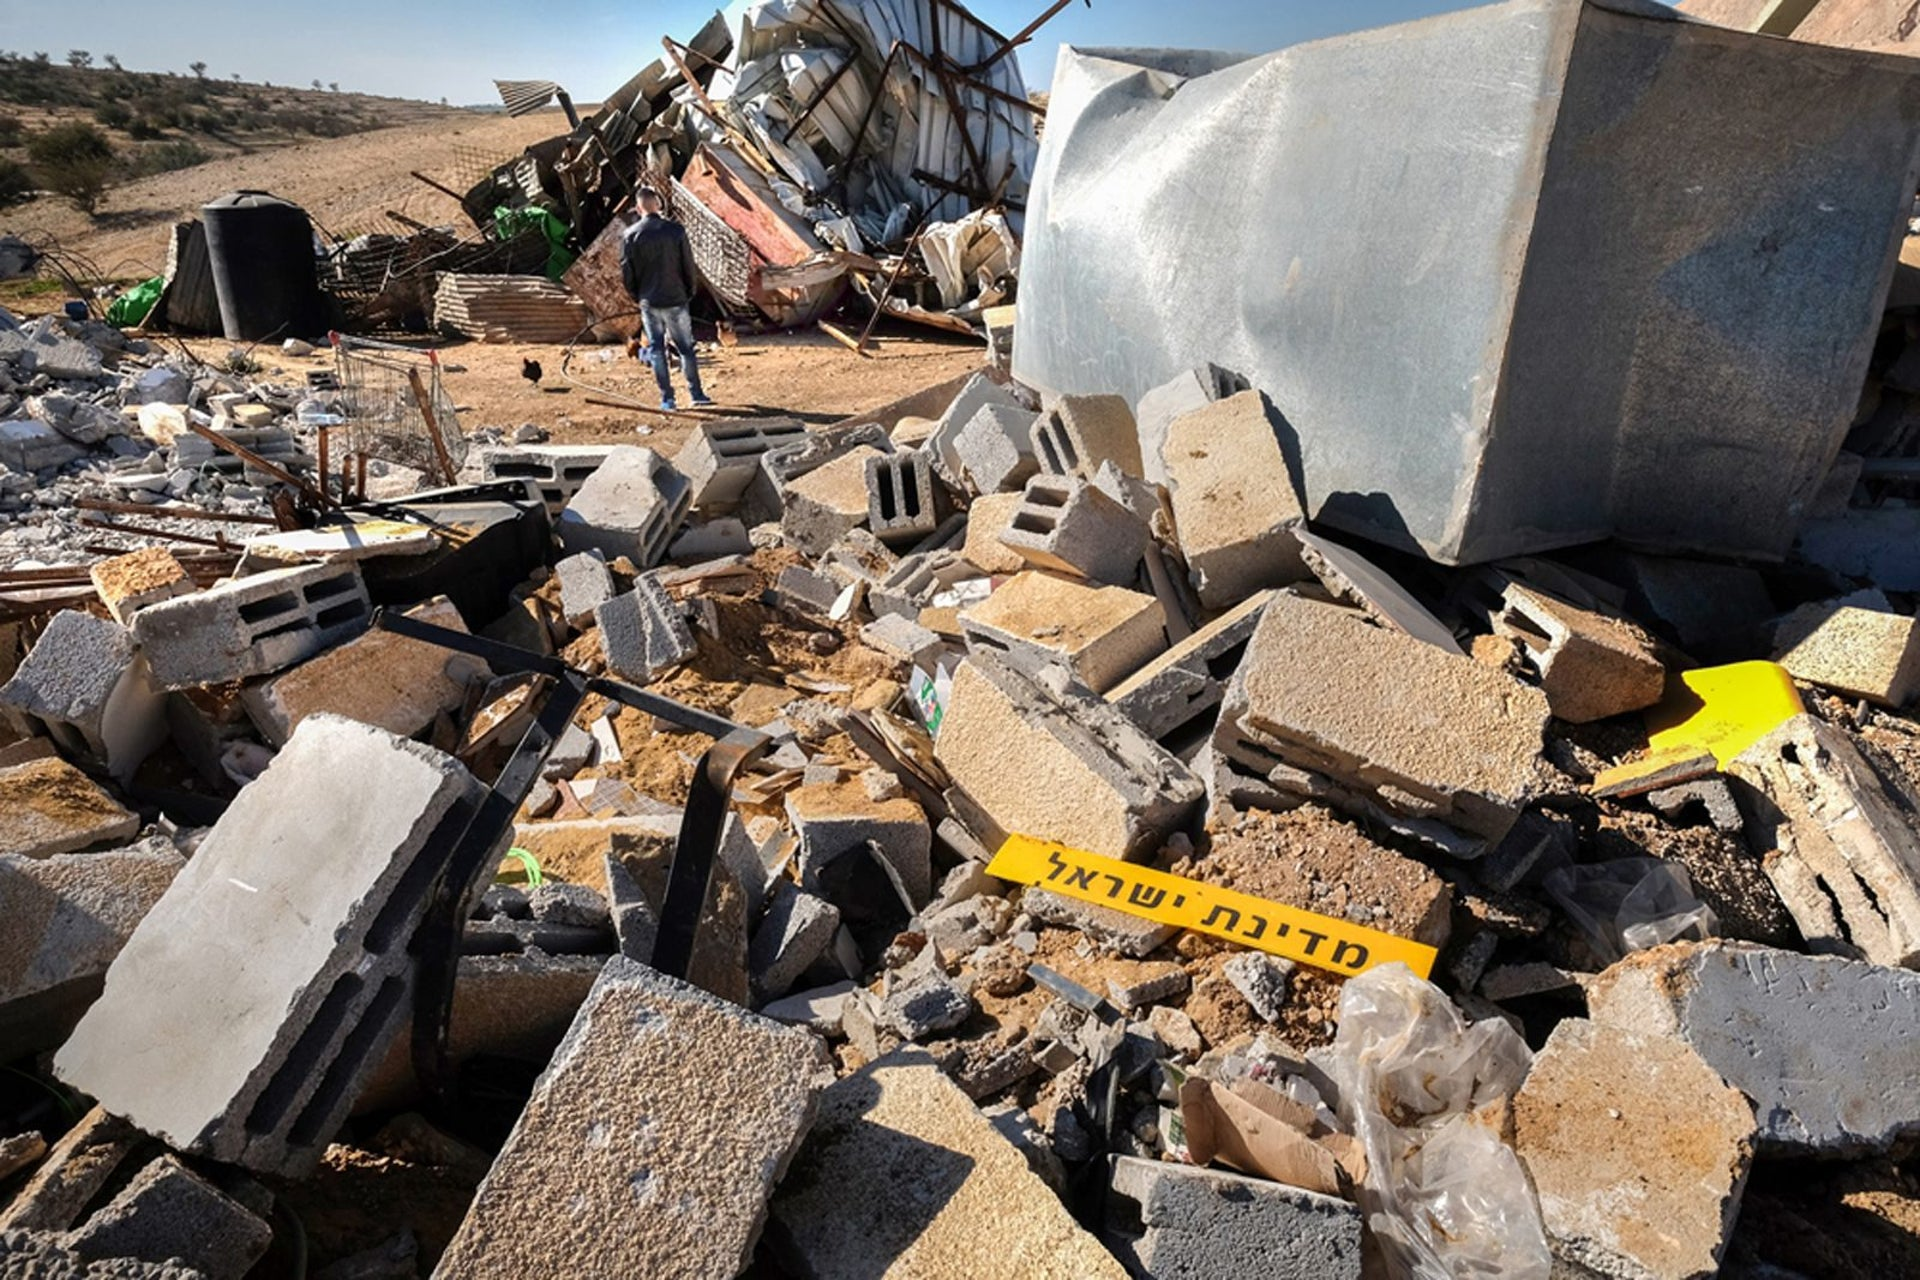 Homes demolished in the Bedouin village of Umm al-Hiran in southern Israel, January 25, 2017.